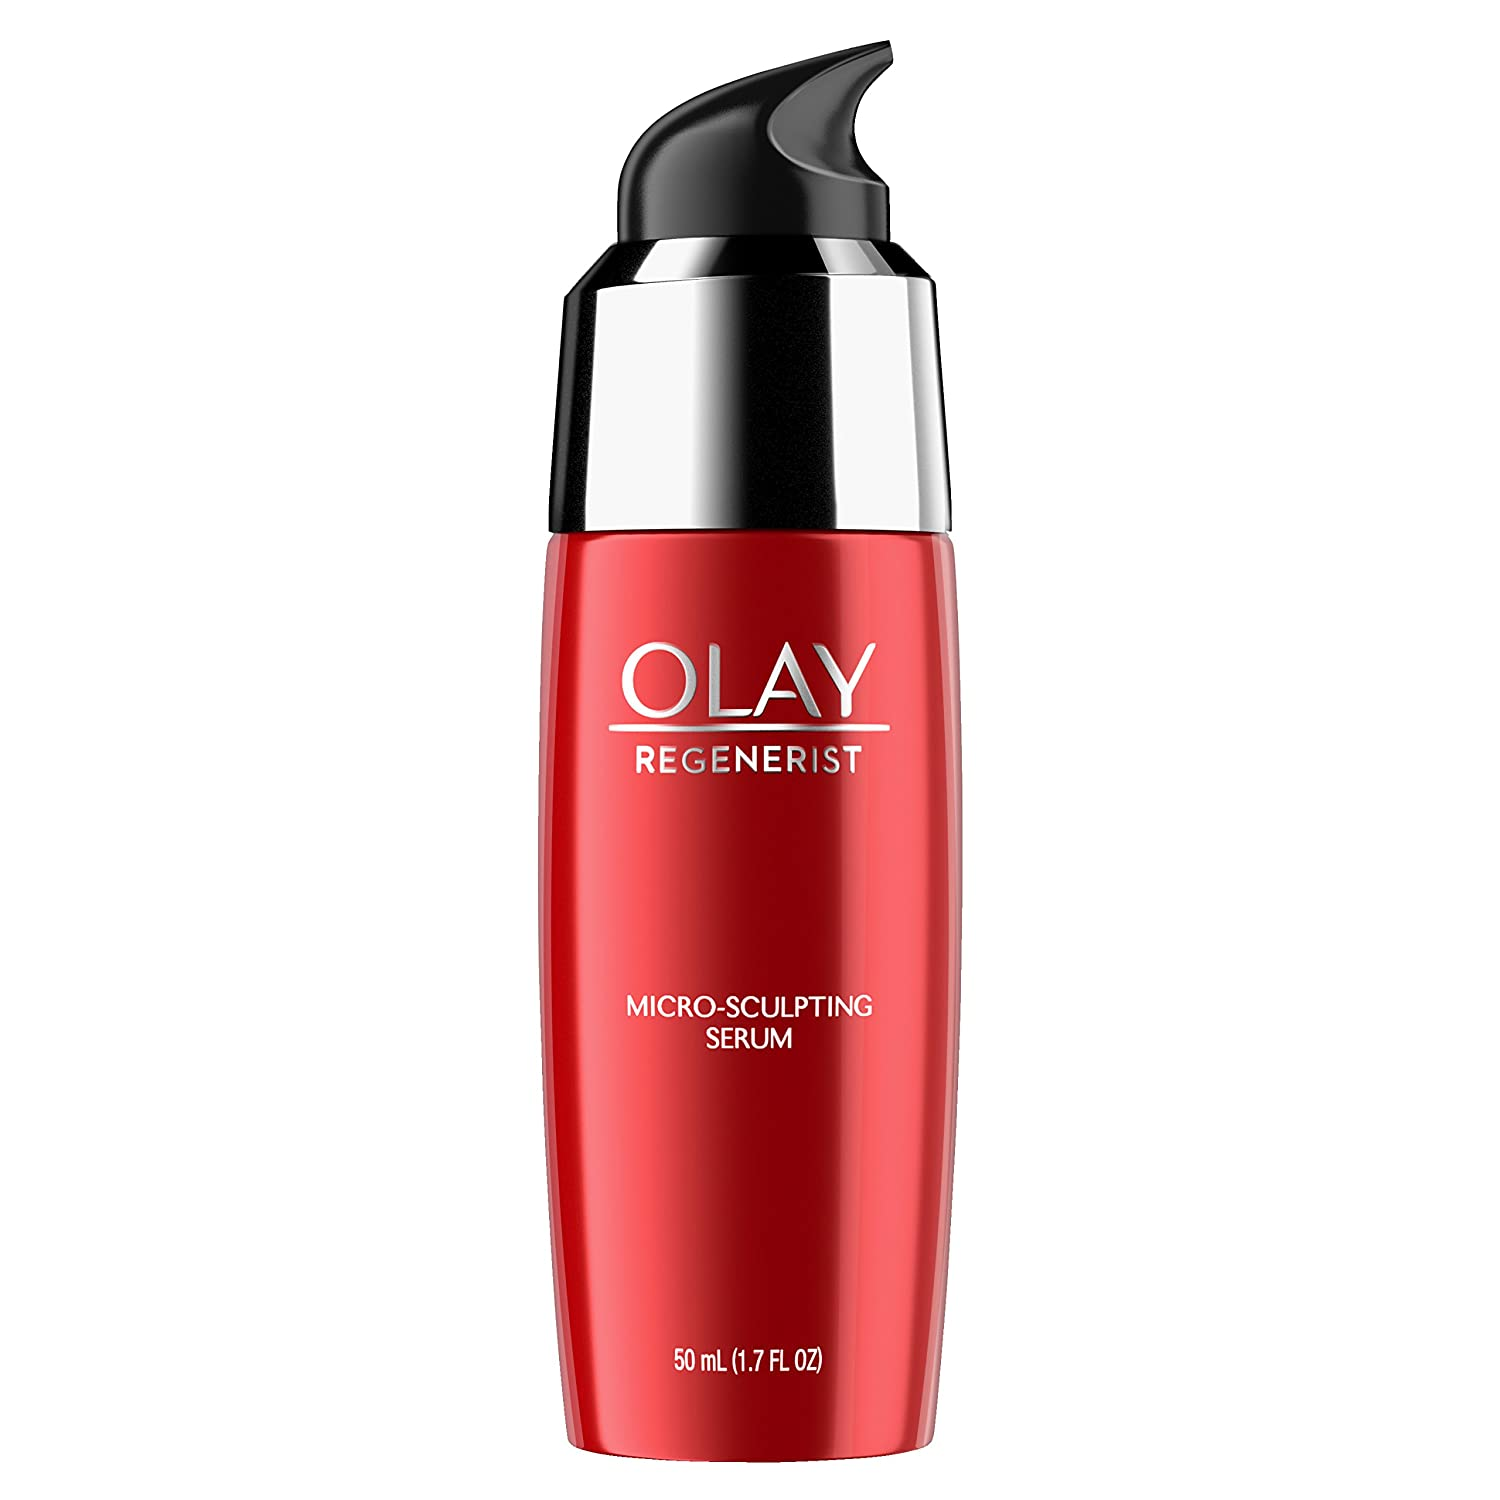 Face Serum with Collagen Peptide by Olay Regenerist with Vitamin E for Micro-Sculpting & Advanced Anti-Aging, 1.7 oz